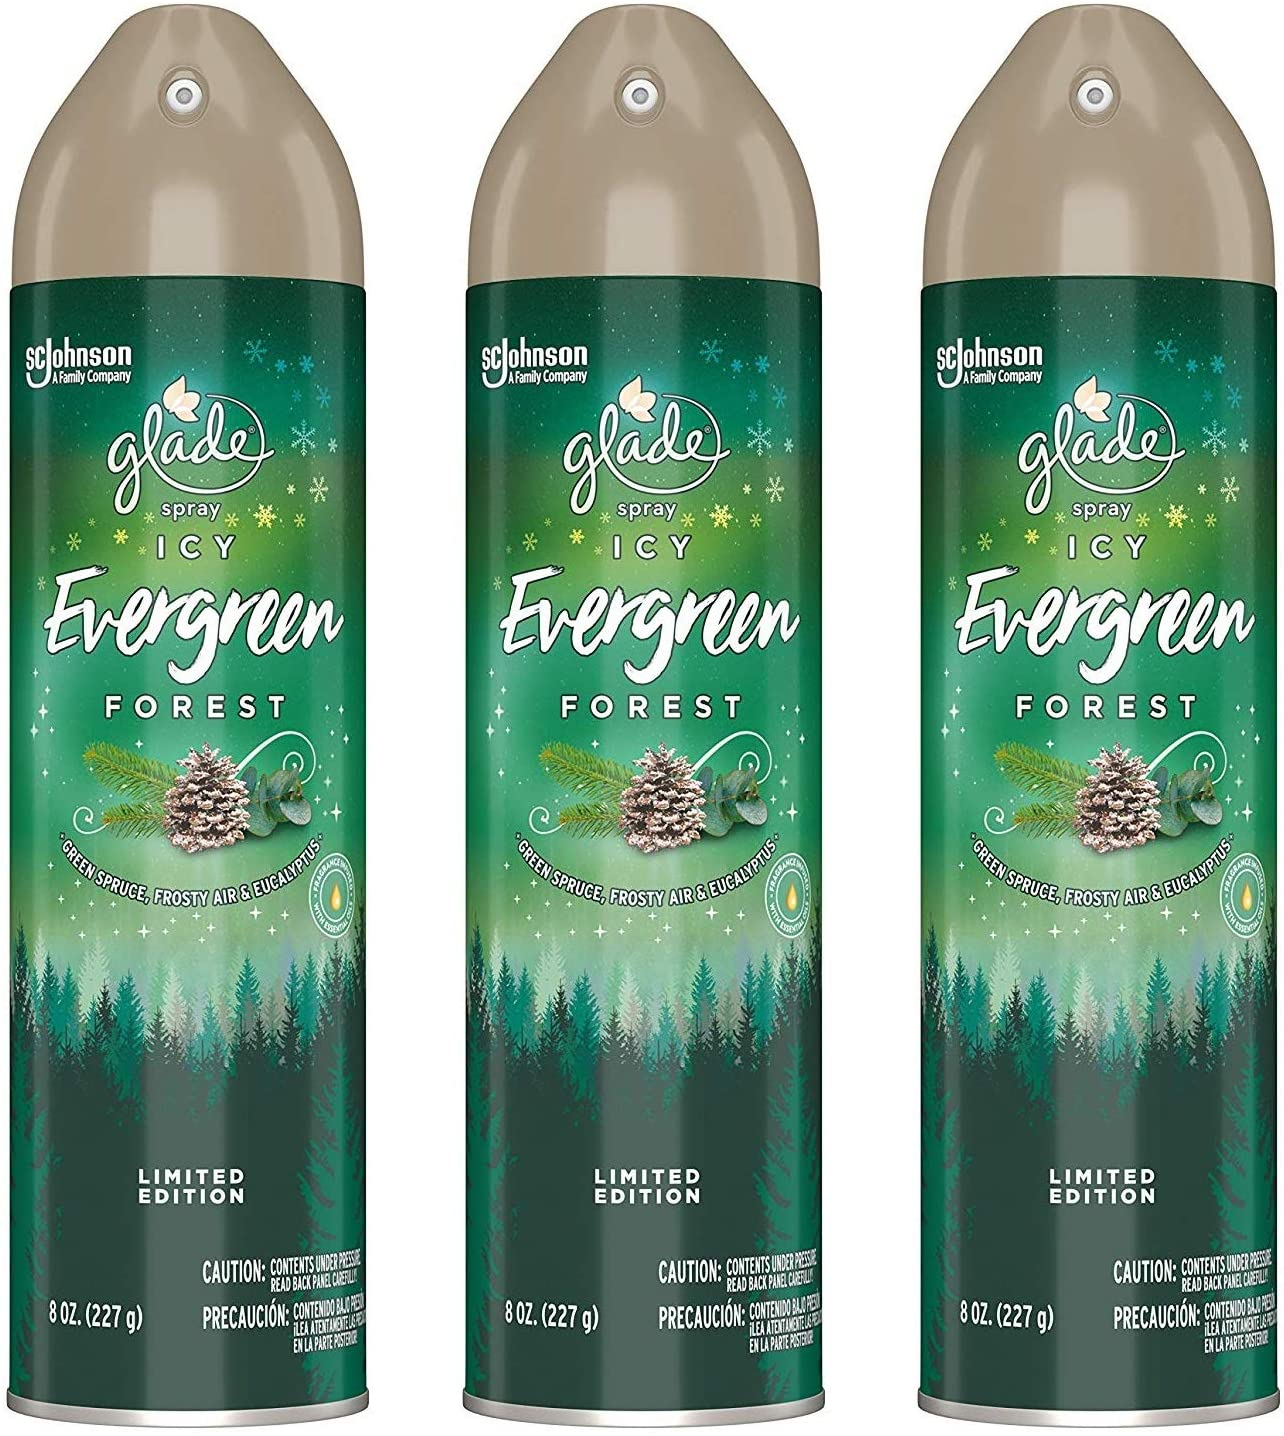 Glade Air Freshener Spray - Limited Edition - ICY Evergreen Forest - Net Wt. 8 OZ (227 g) Per Can - Pack of 3 Cans